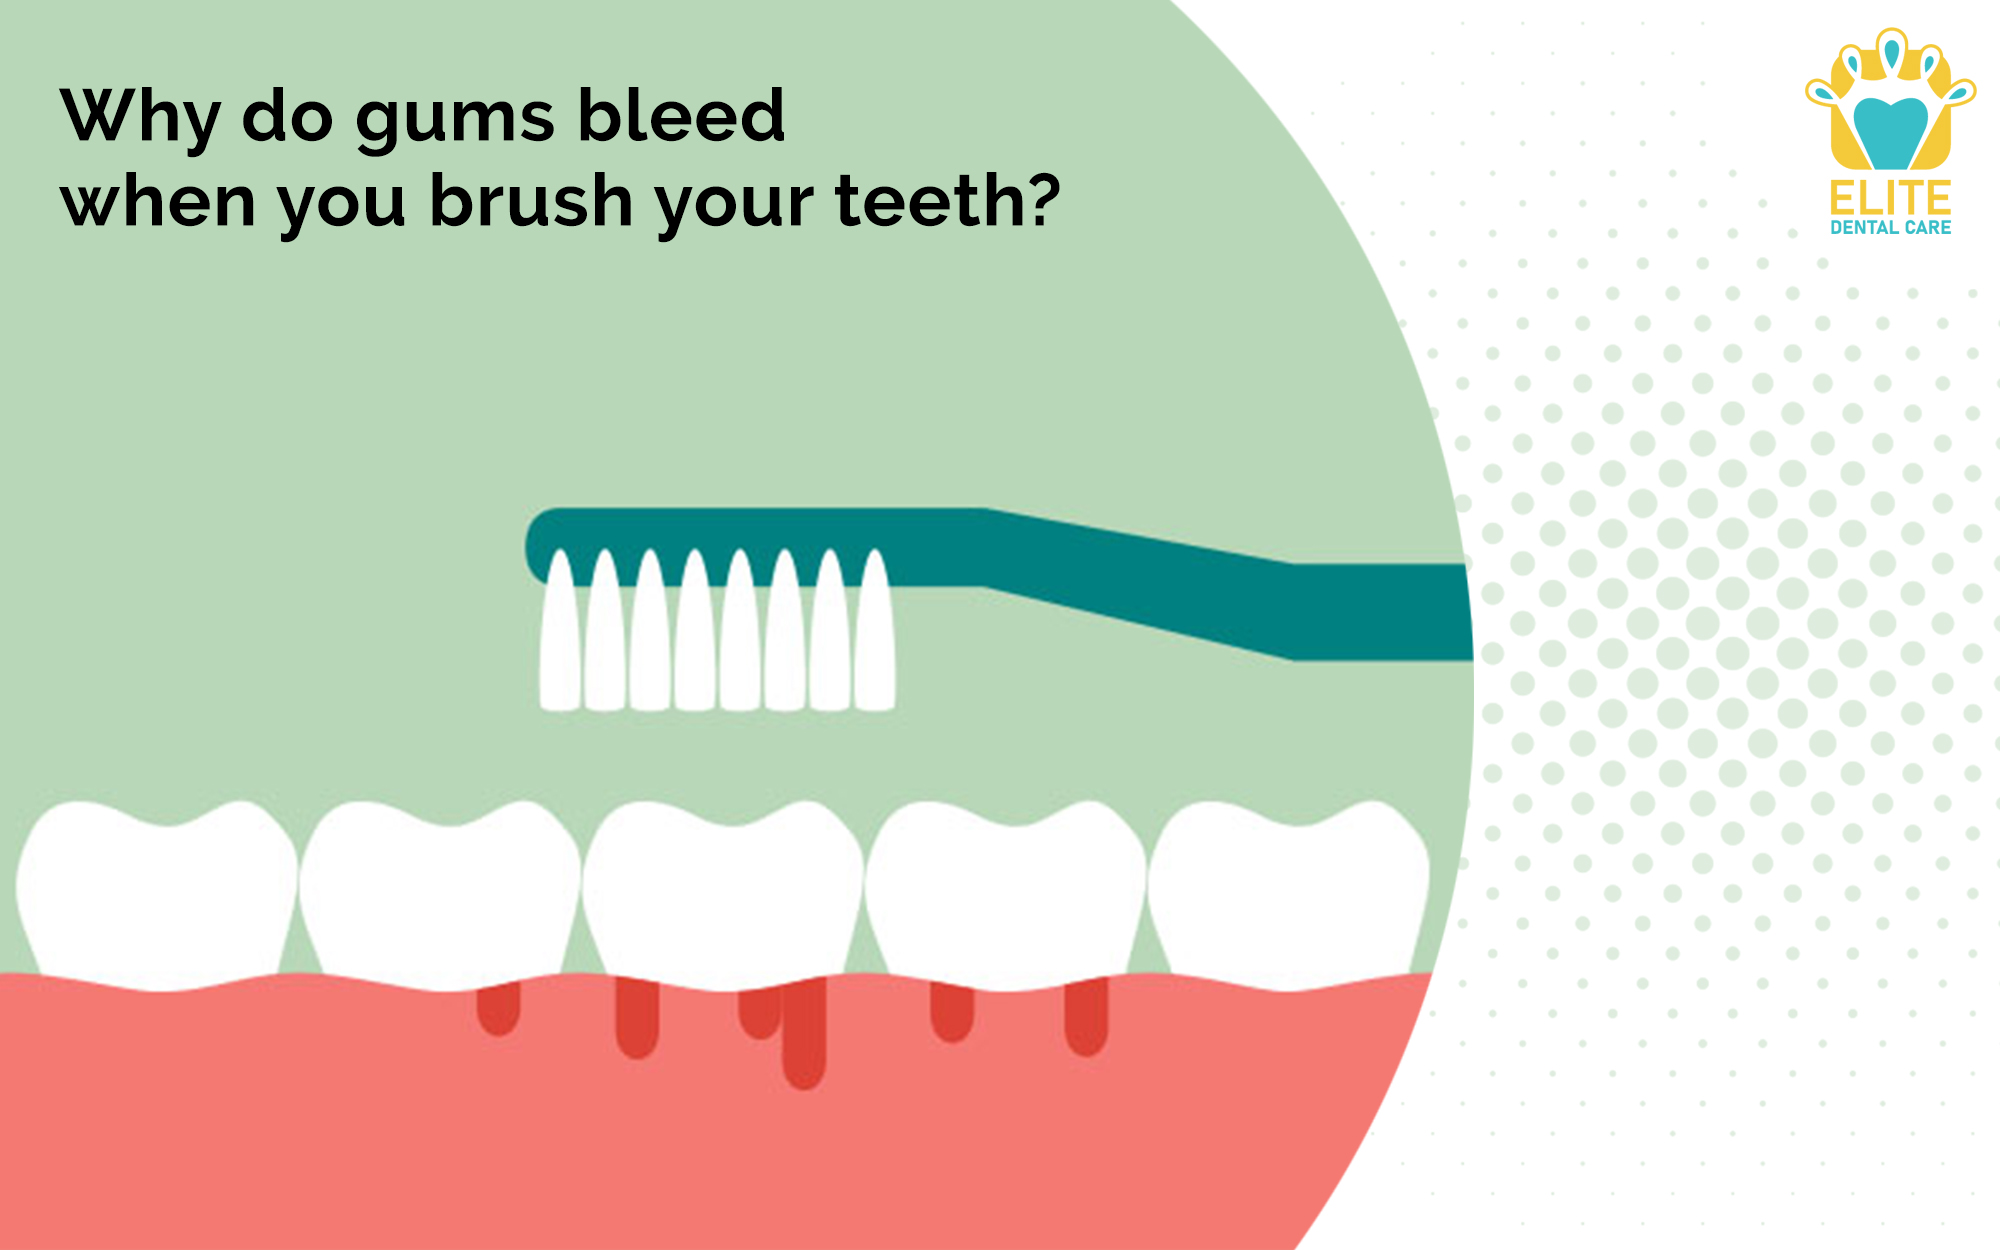 WHY DO GUMS BLEED WHEN YOU BRUSH YOUR TEETH?